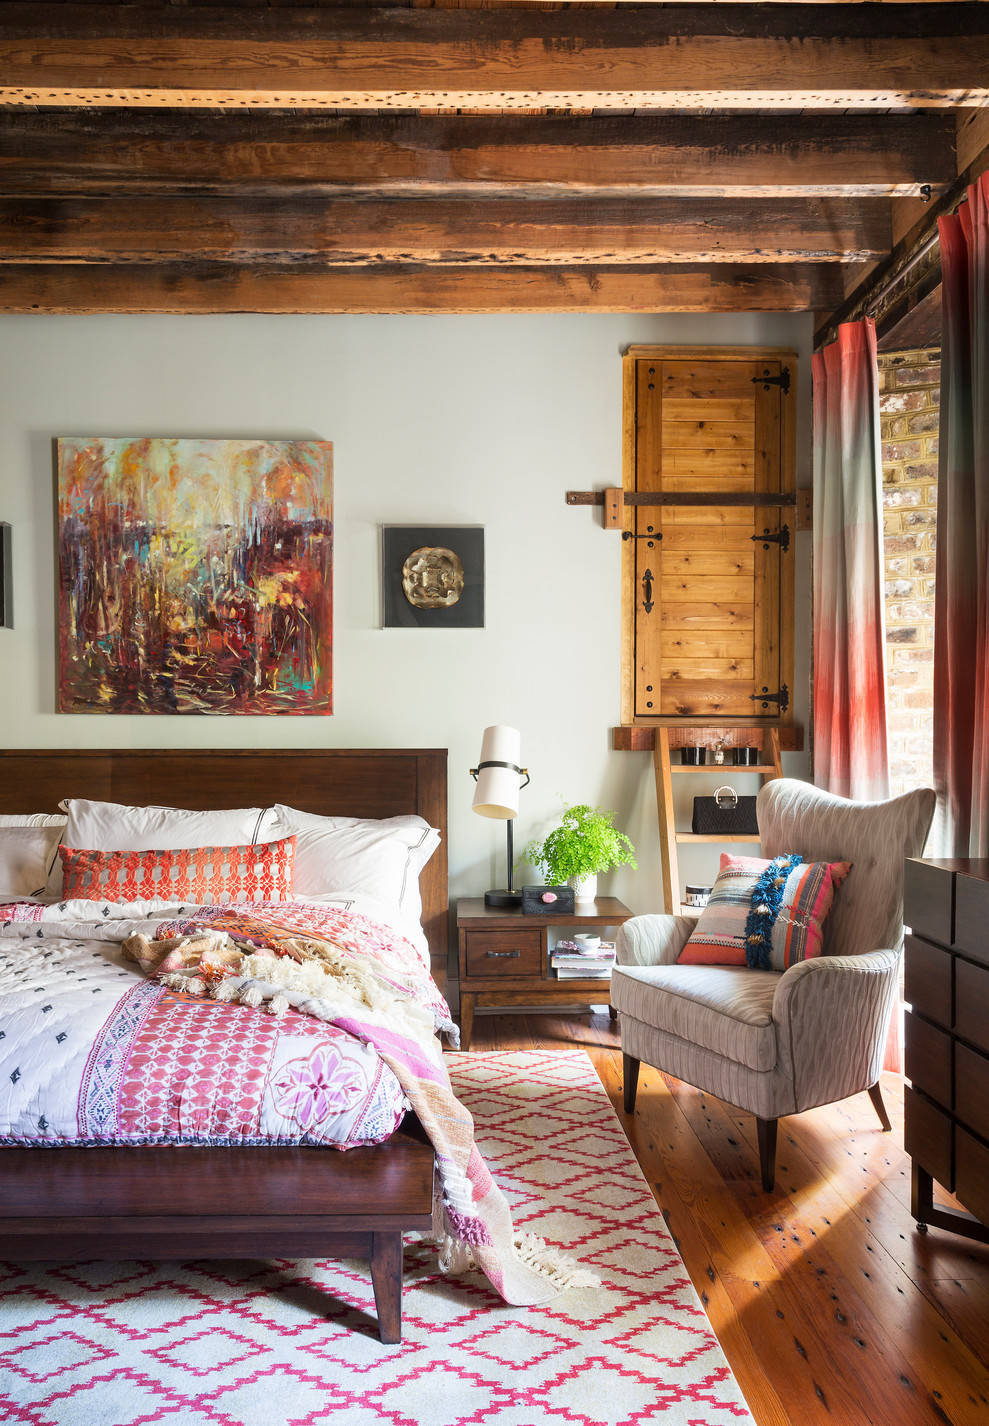 15 Magical Eclectic Bedroom Interiors Youll Never Forget